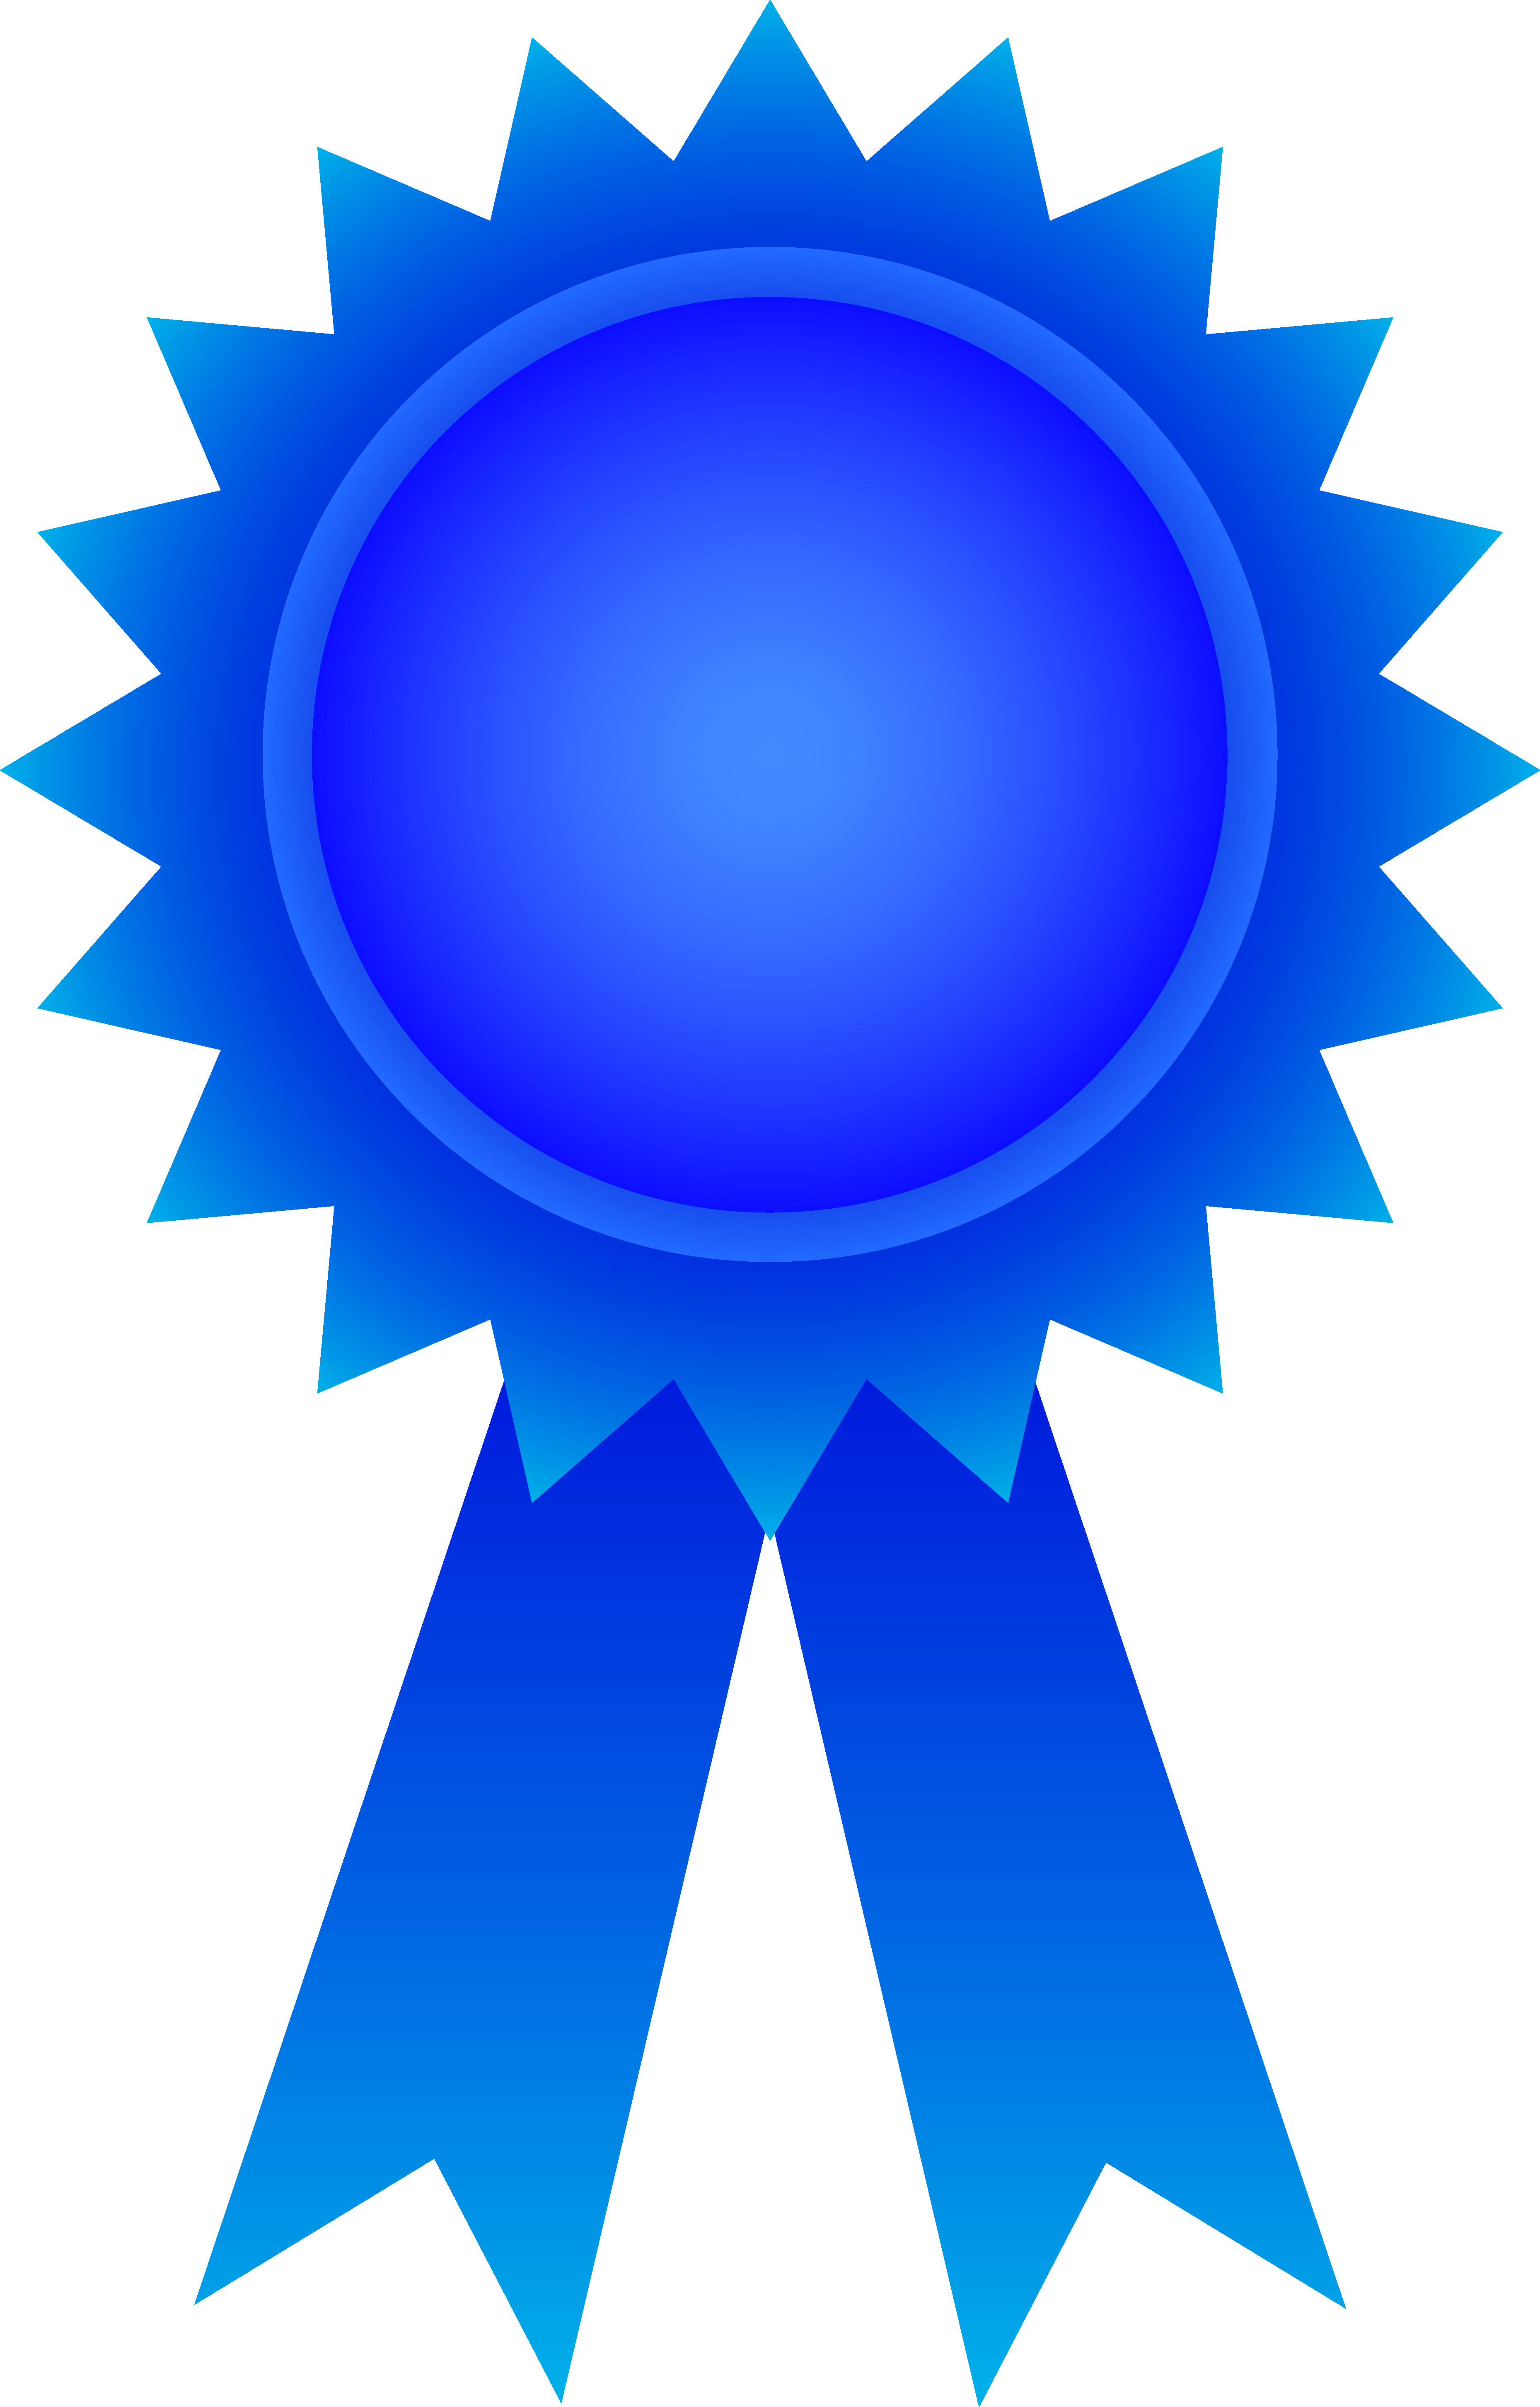 Badge clipart ribbon. Blue award